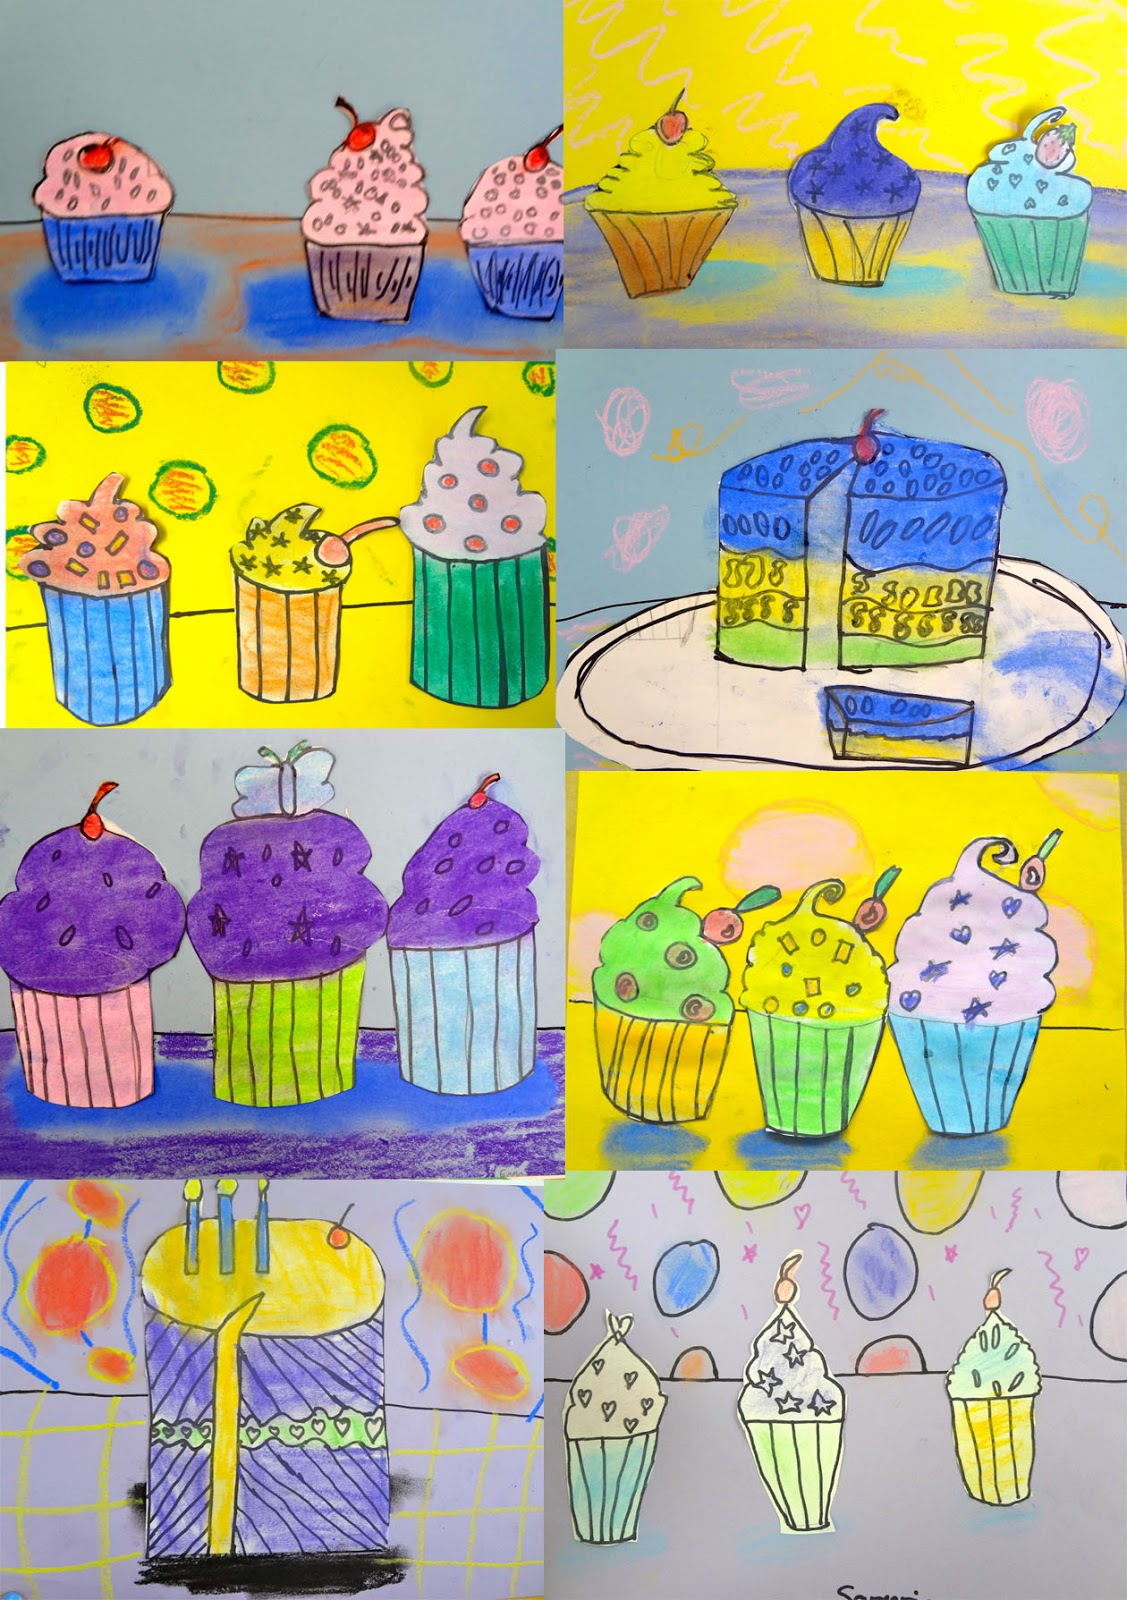 Cupcake Art Lesson : The Talking Walls: Wayne Thiebaud Lesson for 3rd Grade